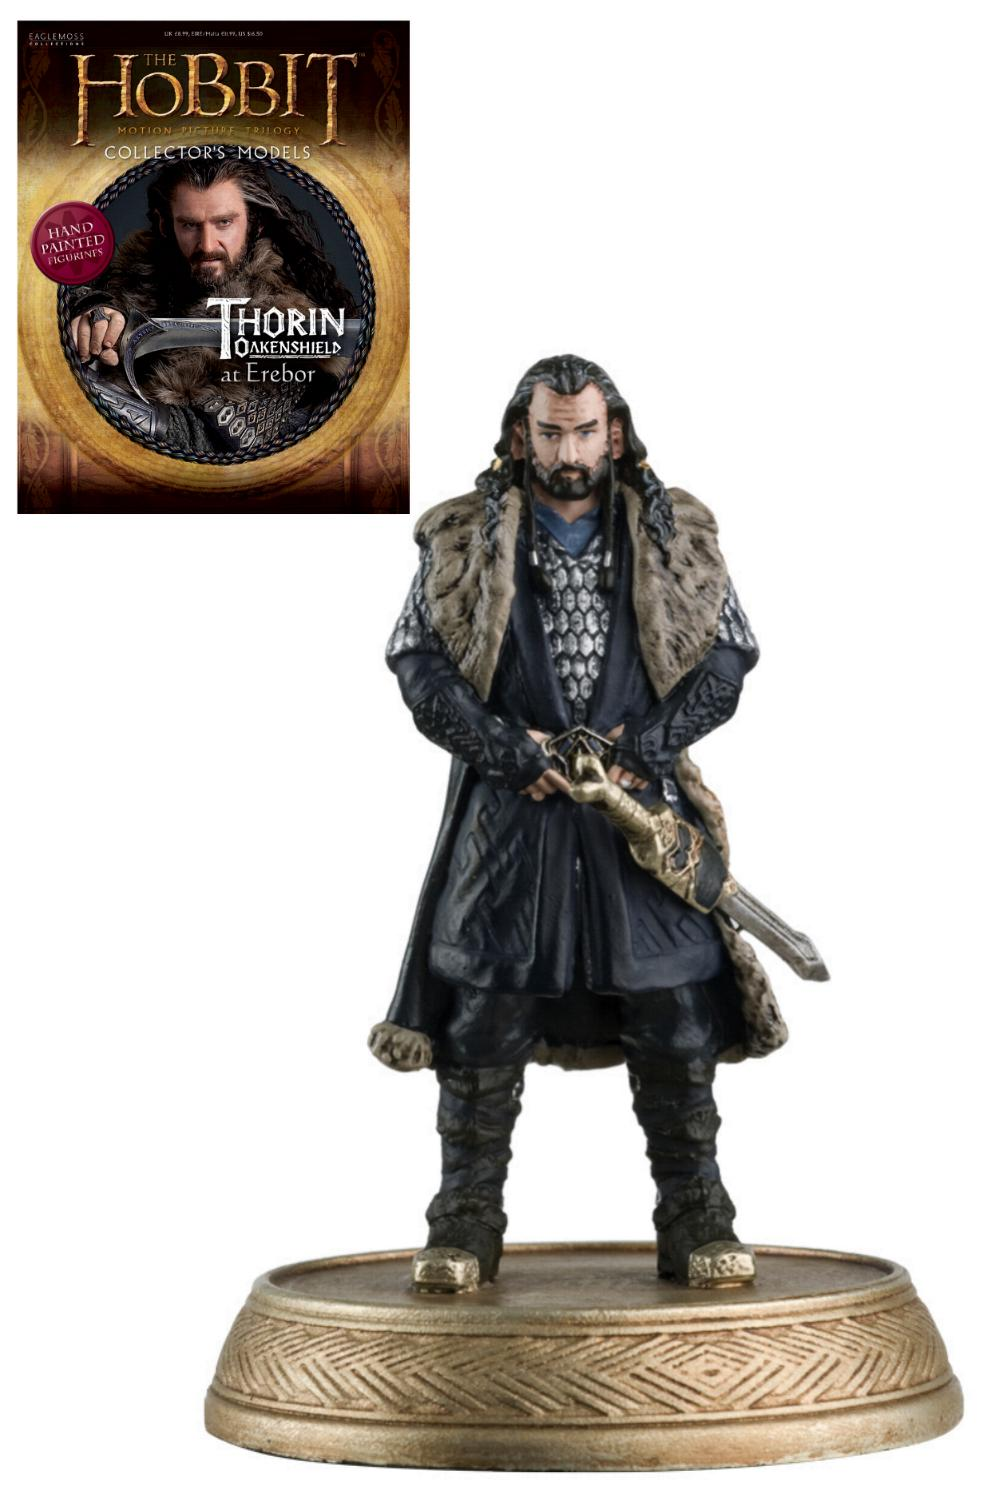 Hobbit: Motion Picture Figure - Magazine  Series 02 - Thorin Oakenshield Collectible